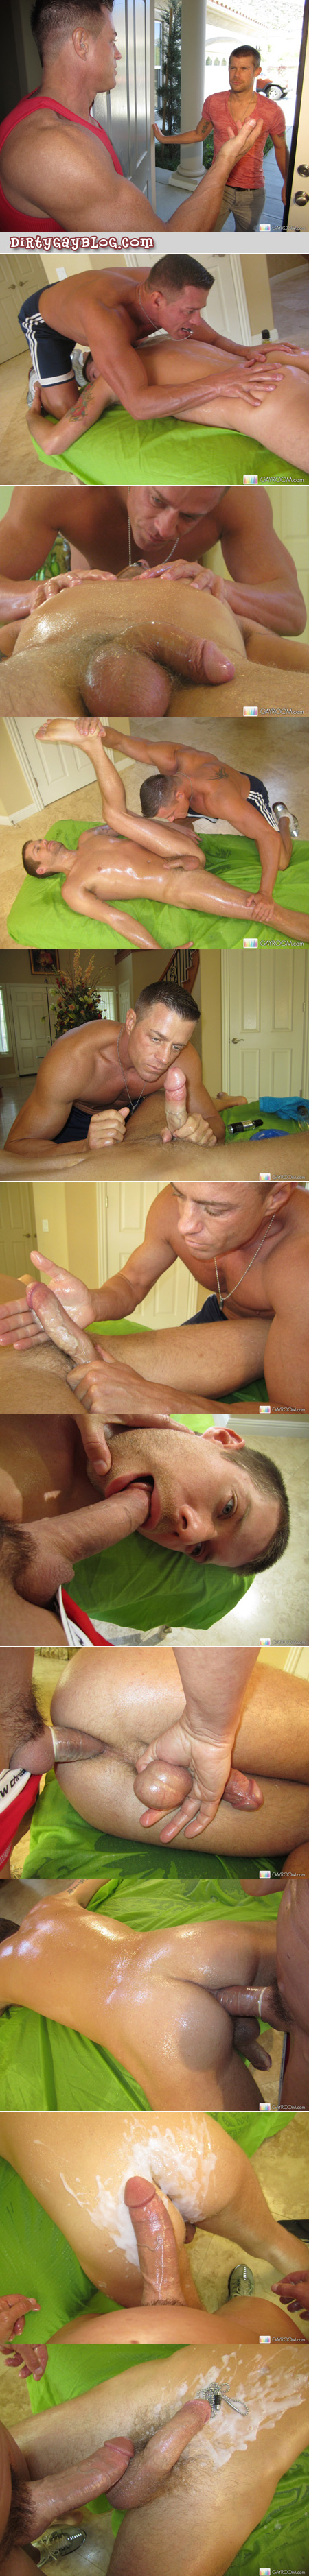 Muscular masseur gives a gay sex massage with his big dick and tons of cum.